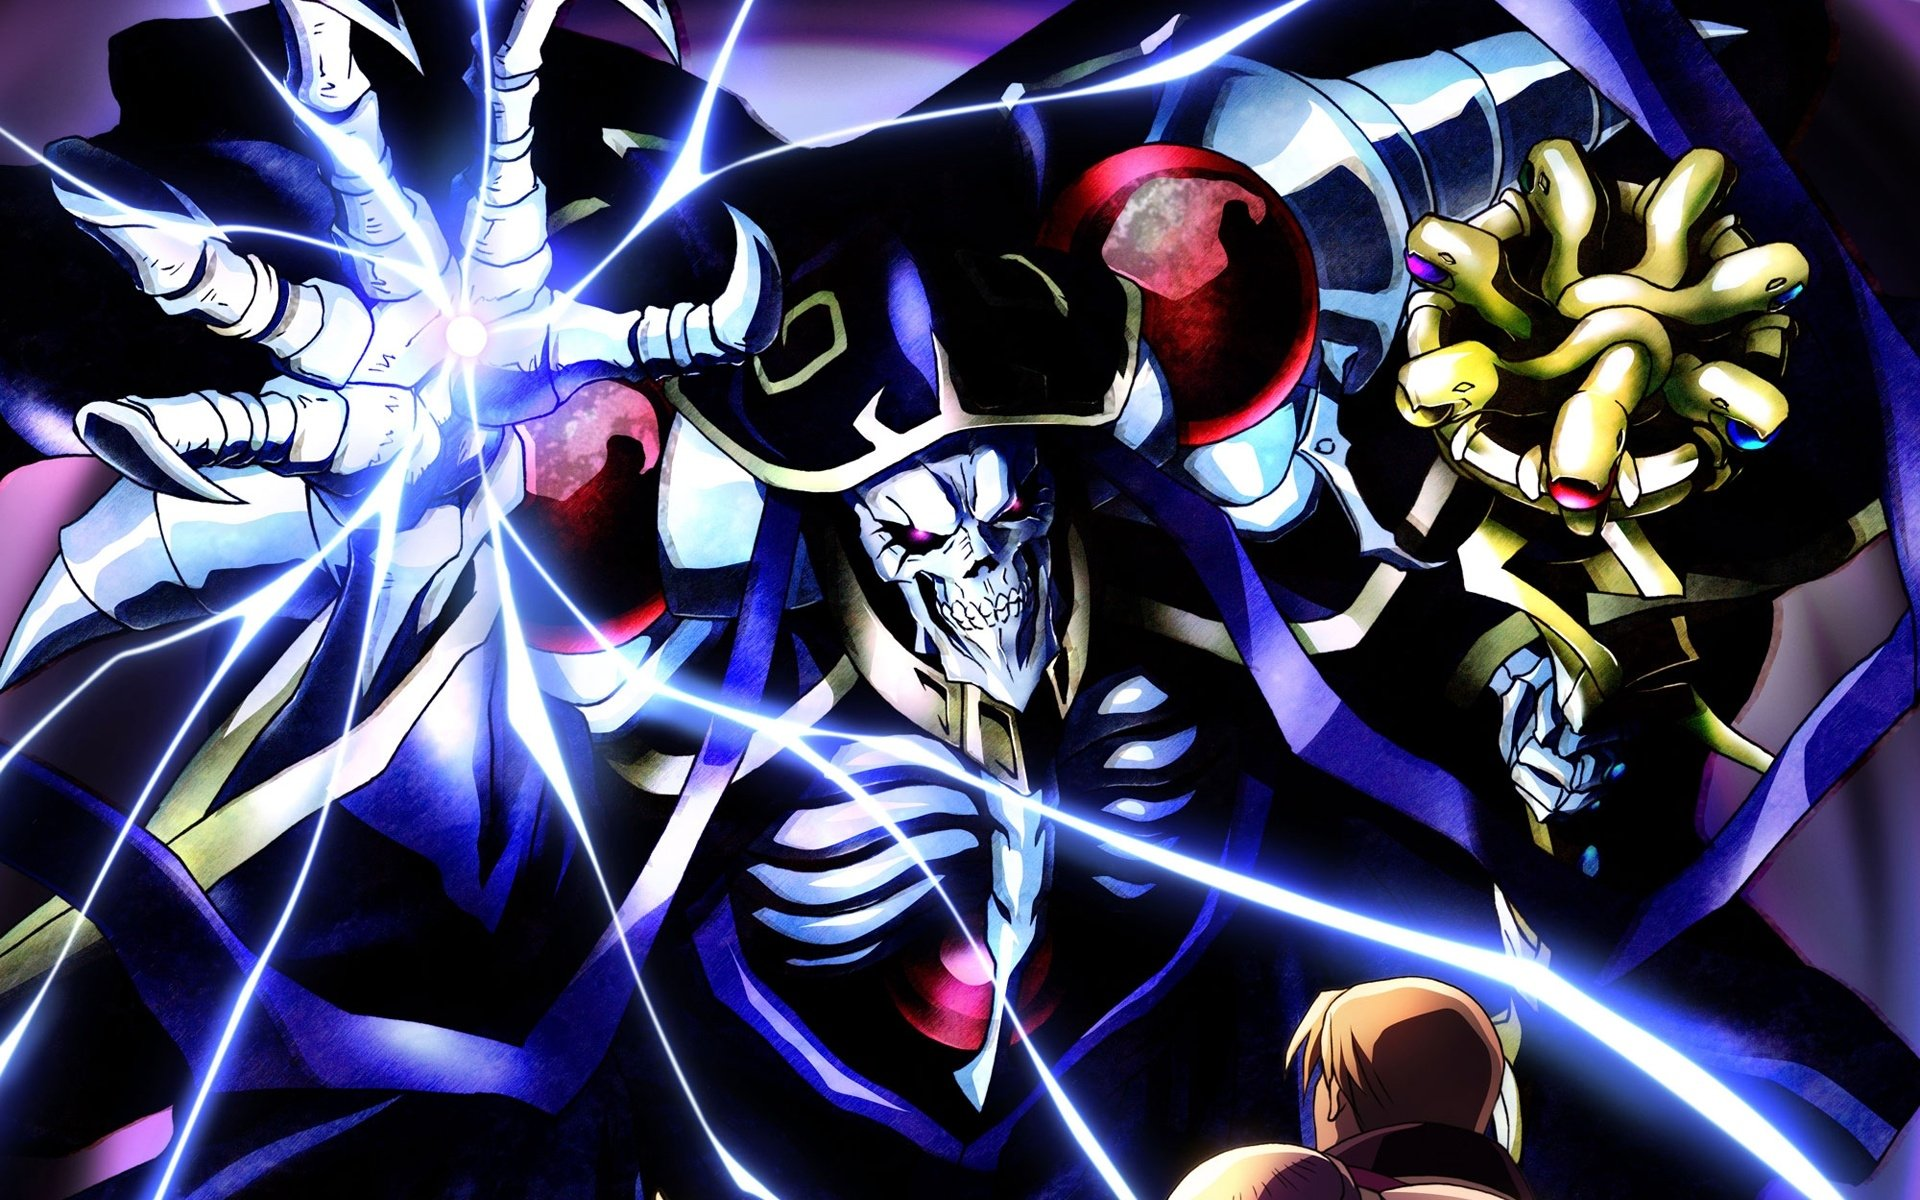 Hd Wallpaper Background Image Id X Anime Overlord